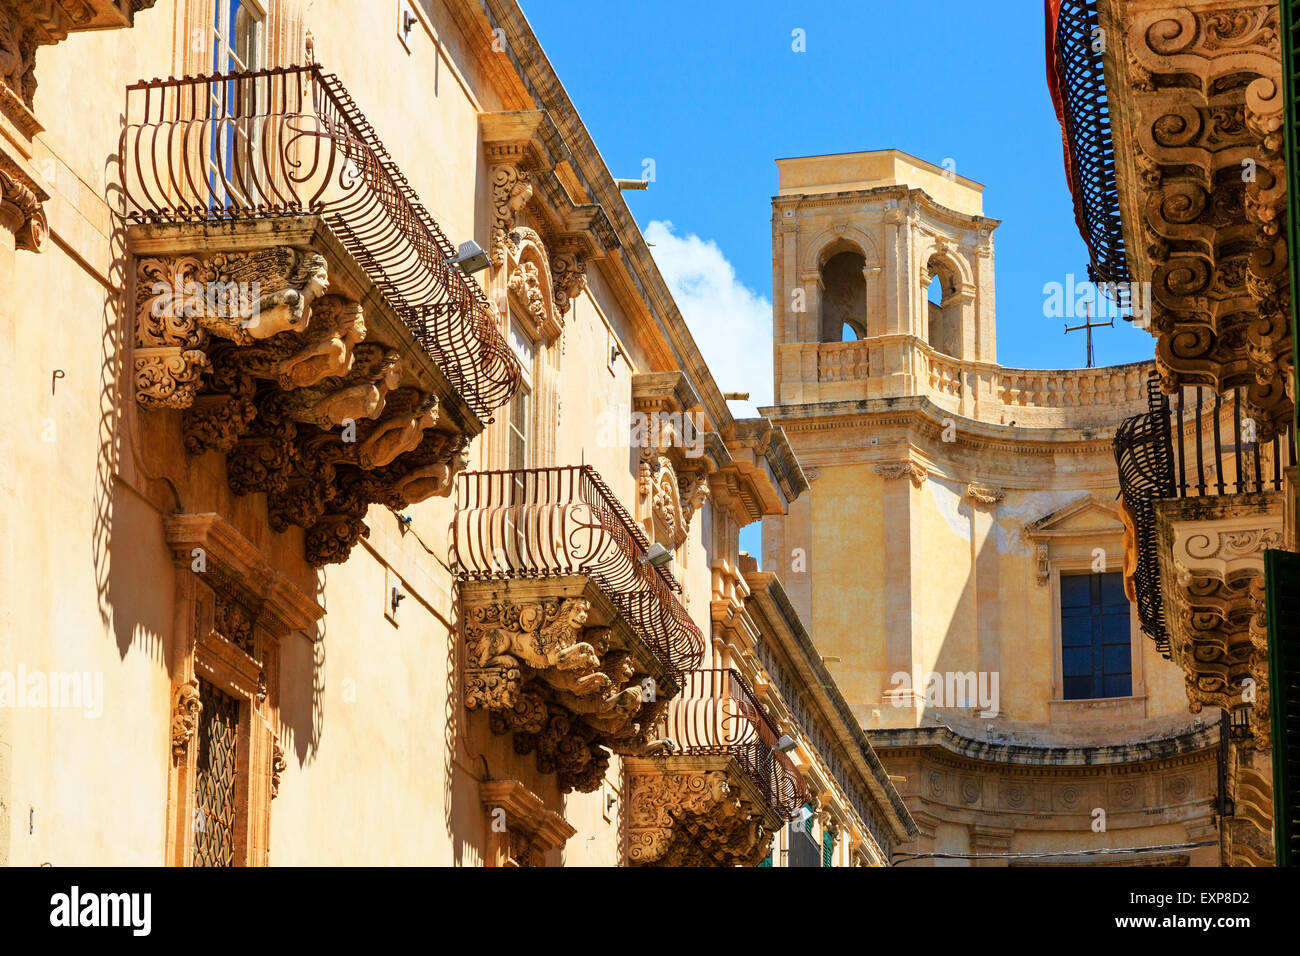 baroque architecture and balcony buttresses on buildings in via